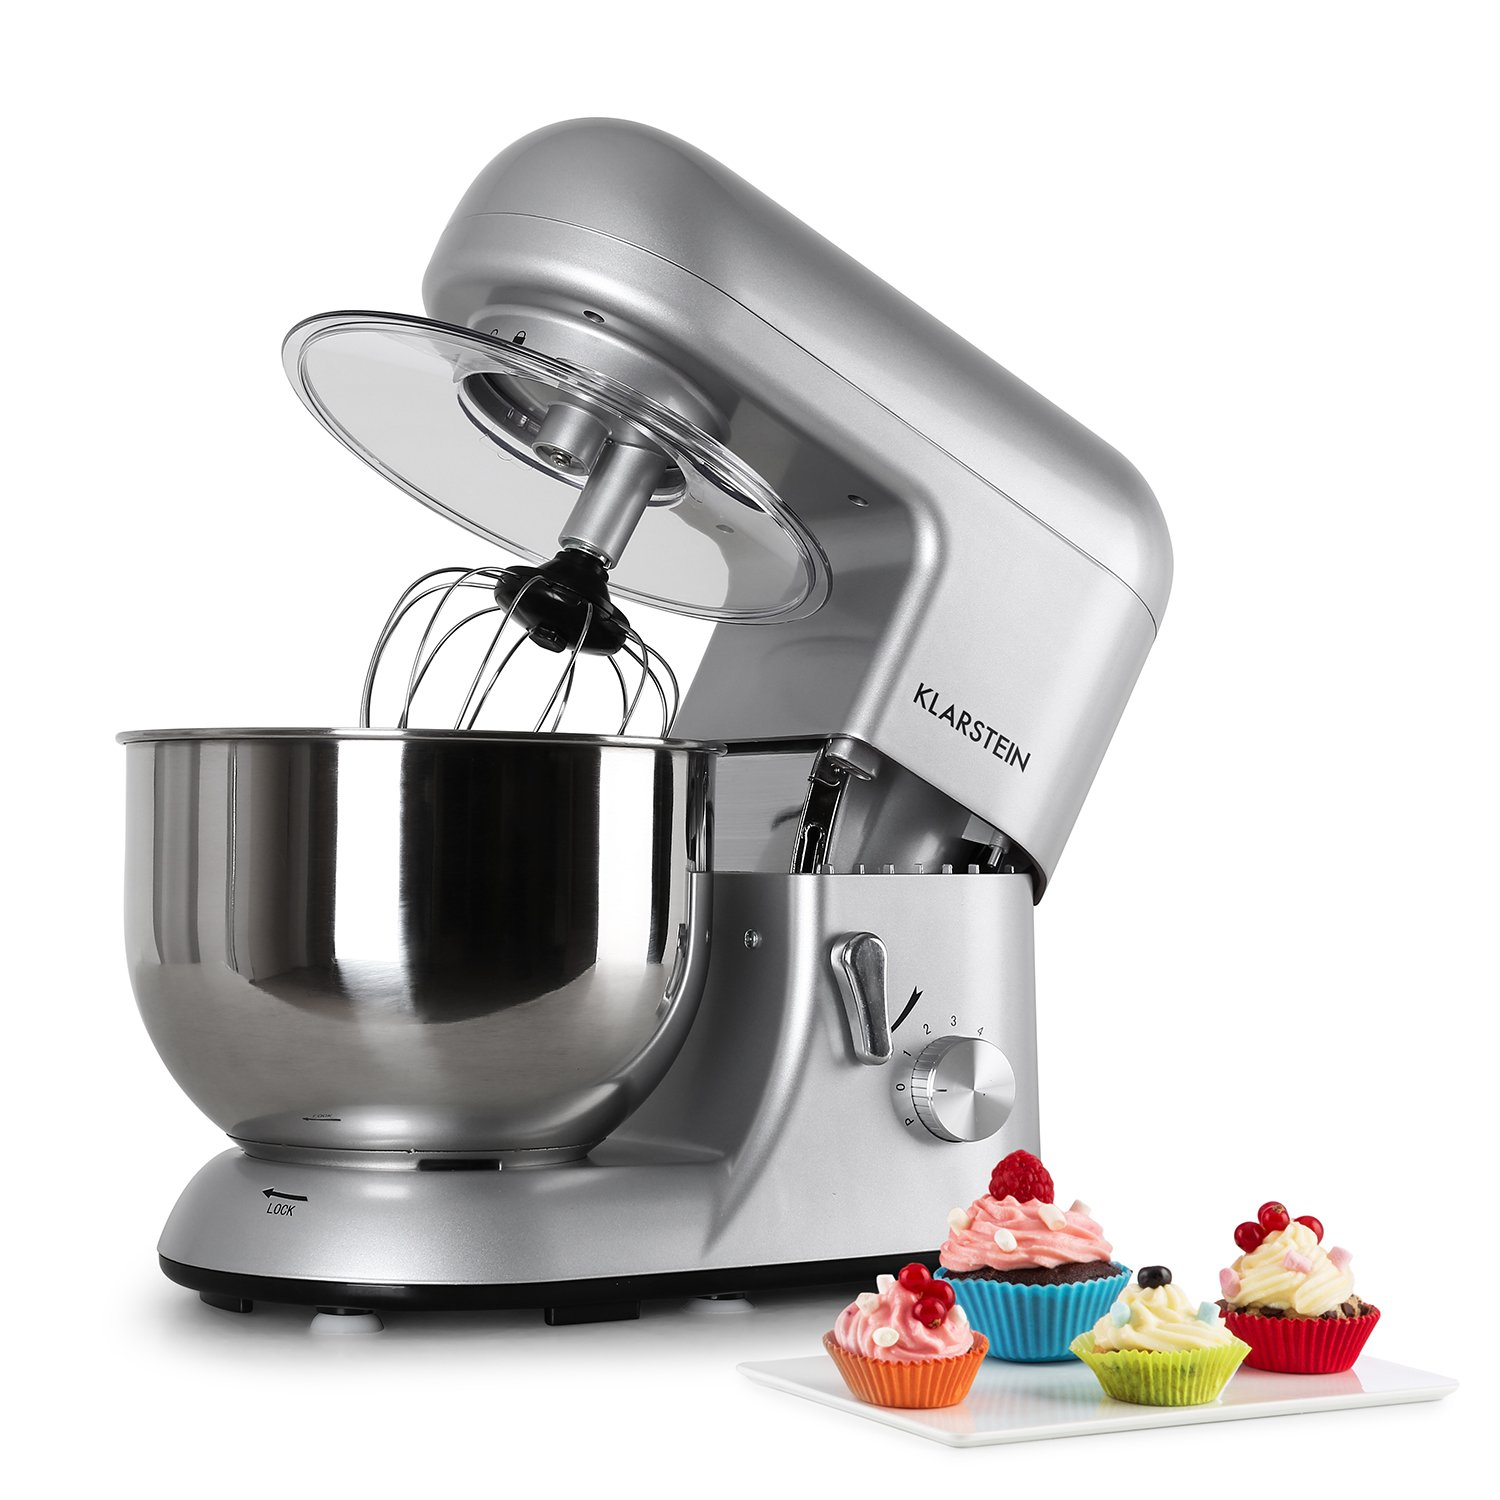 KLARSTEIN Bella Argentea • Tilt-Head Stand Mixer • Dough Hook, Flat Beater, Wire Whip • 650 W • 5.5 qt Stainless Steel Bowl • Planetary Mixing • 6 Speeds • Silver